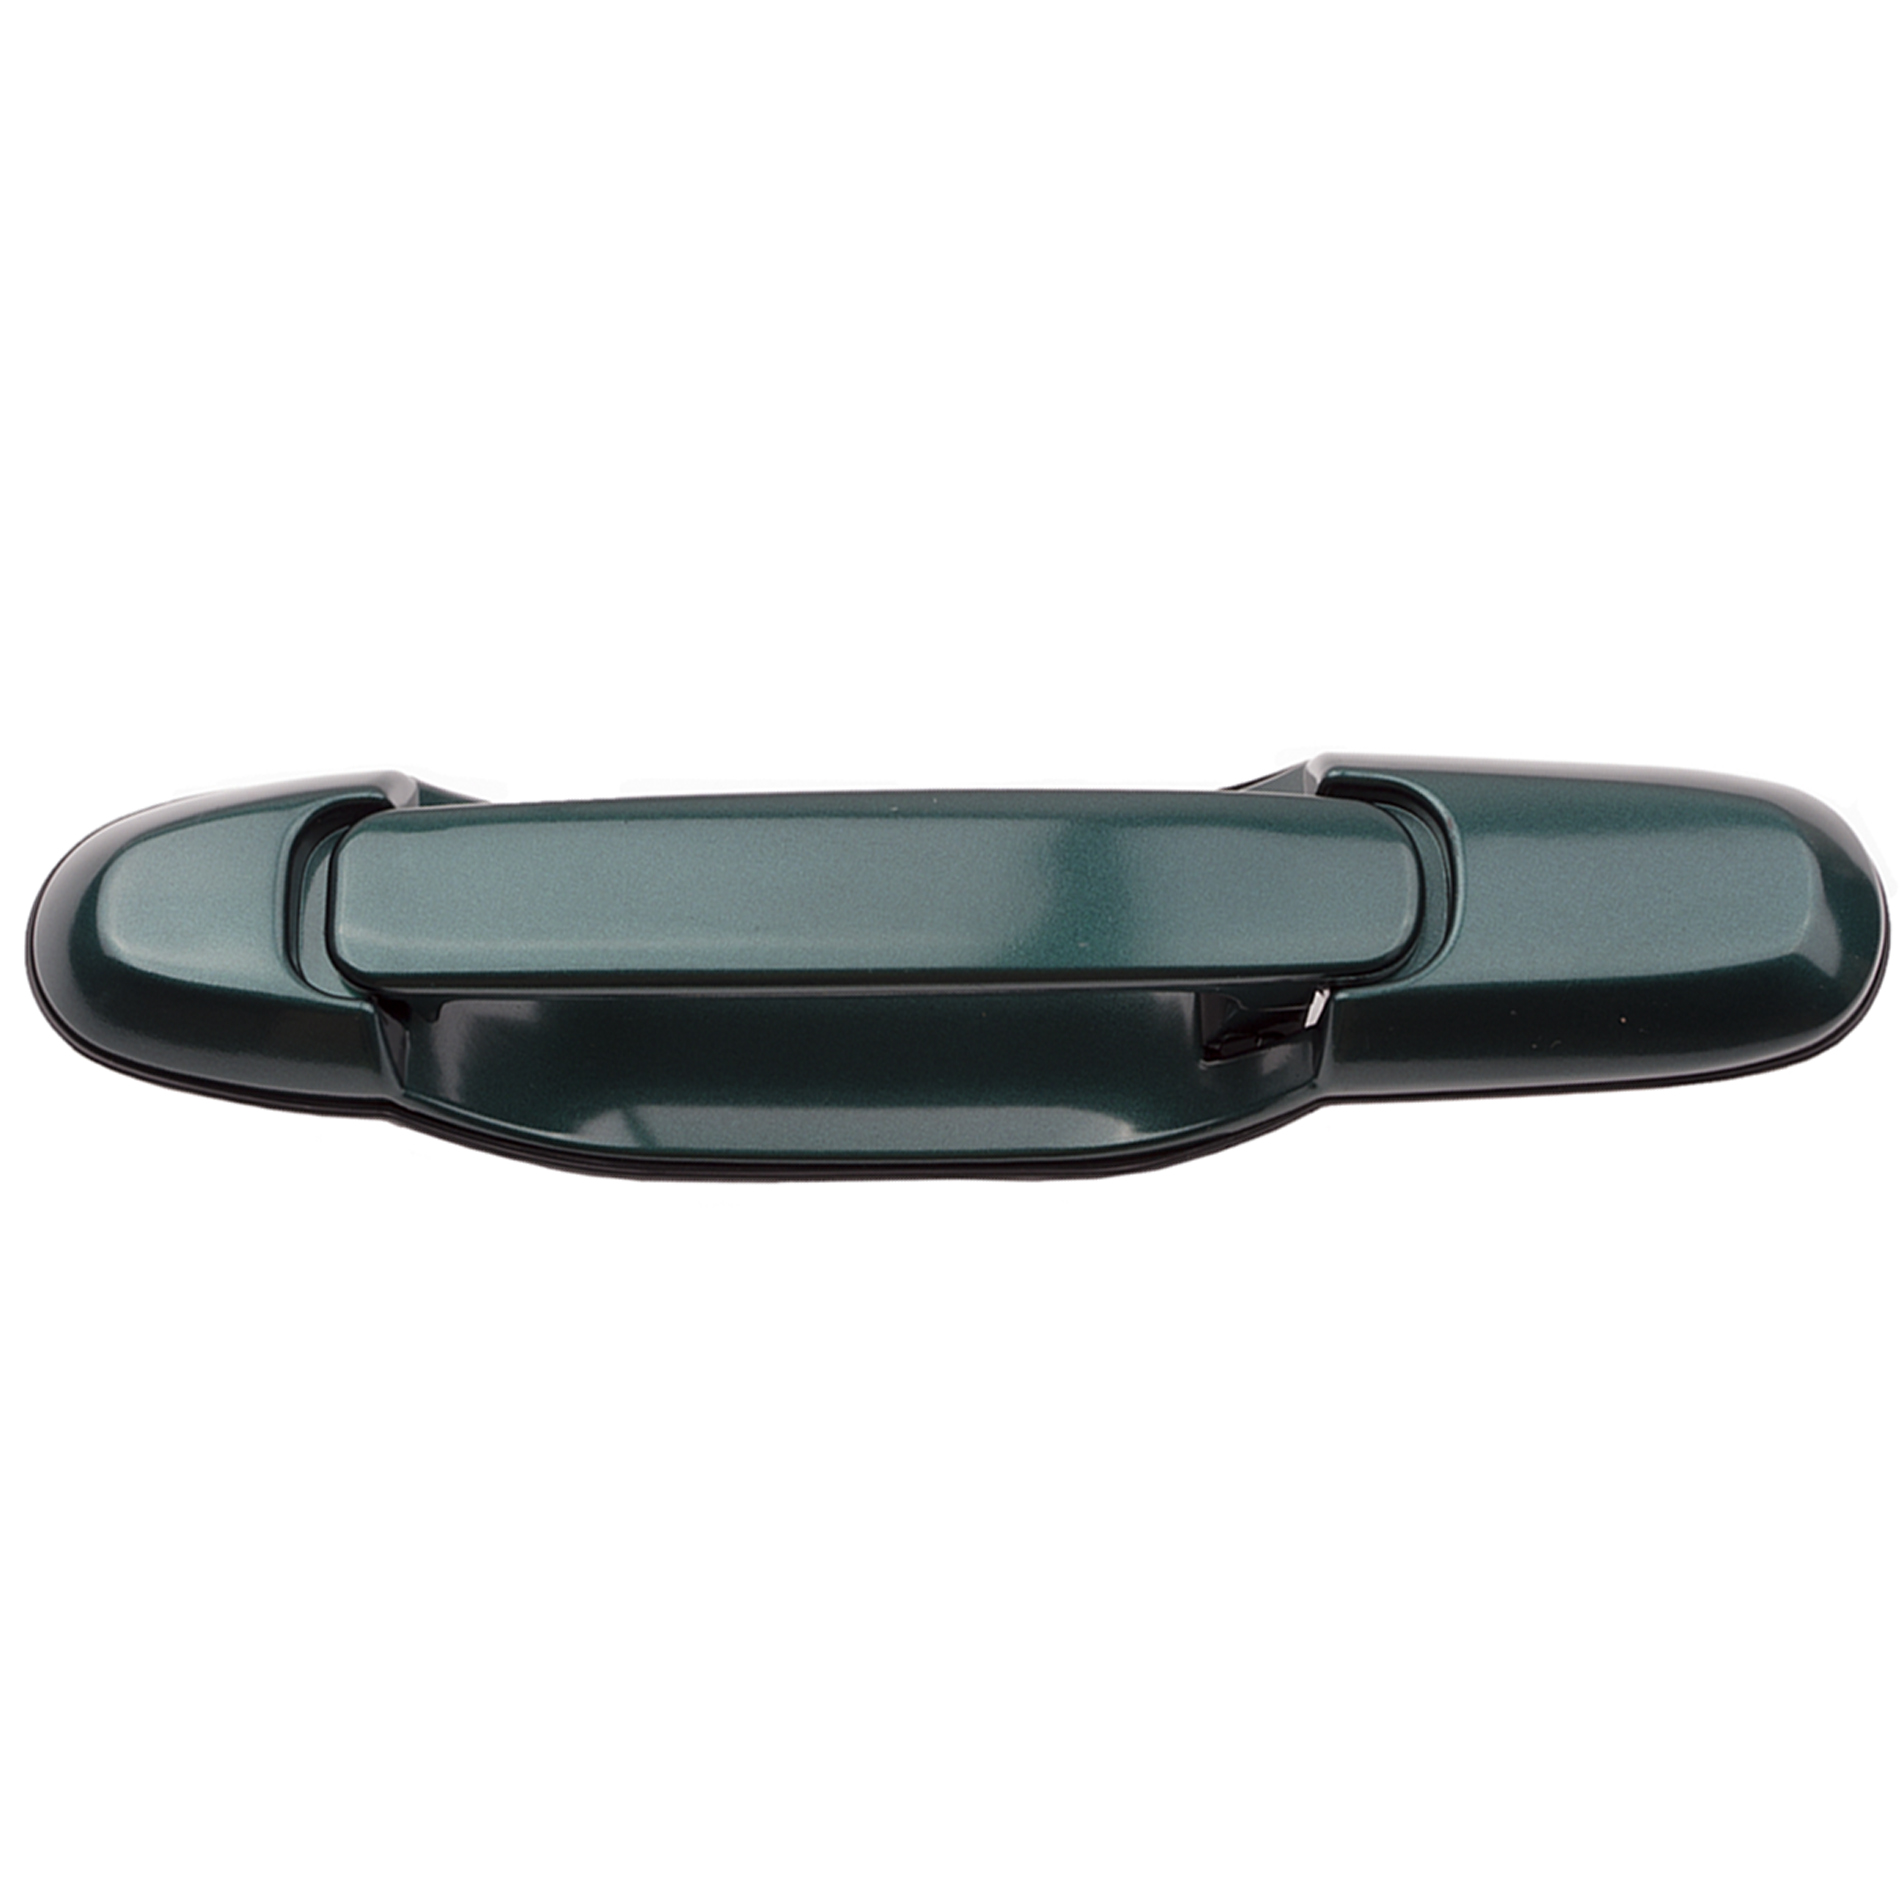 E1D81 Fits 98-03 Toyota Sienna Outside Door Handle Front Pair Green Pearl 6P2